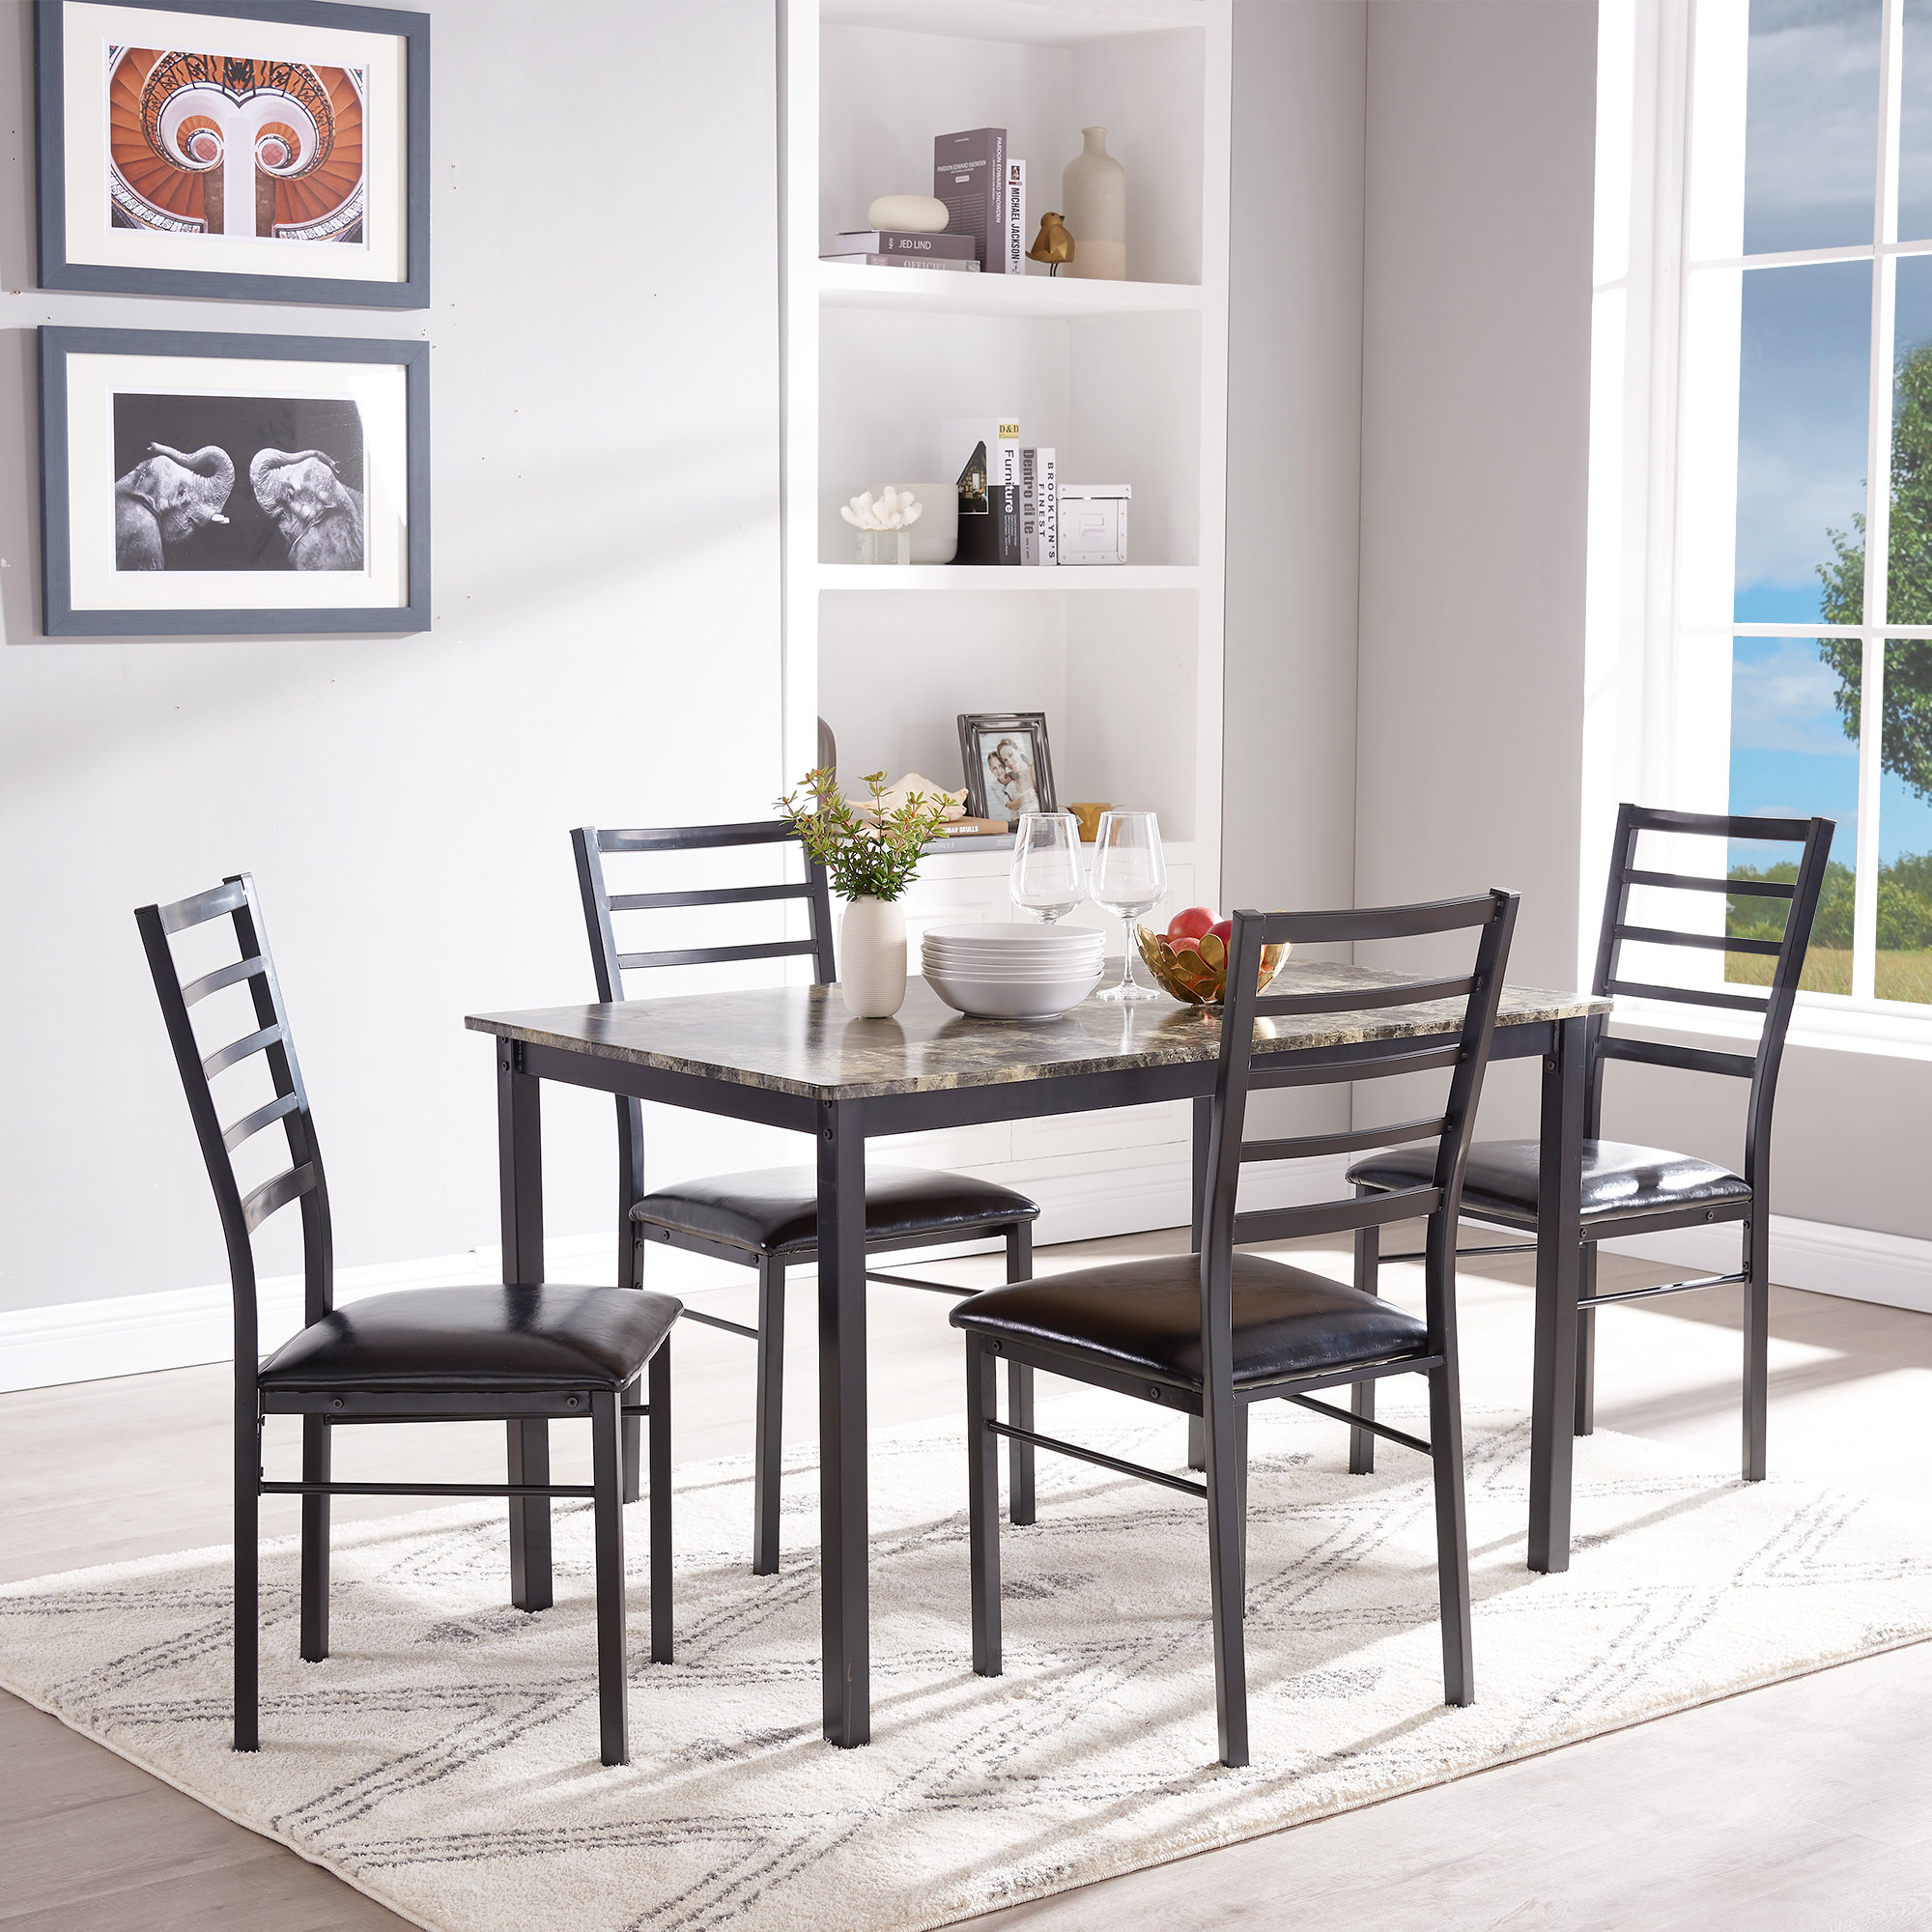 Details About Winston Porter Mukai 5 Piece Dining Set With Regard To Latest Presson 3 Piece Counter Height Dining Sets (View 6 of 20)